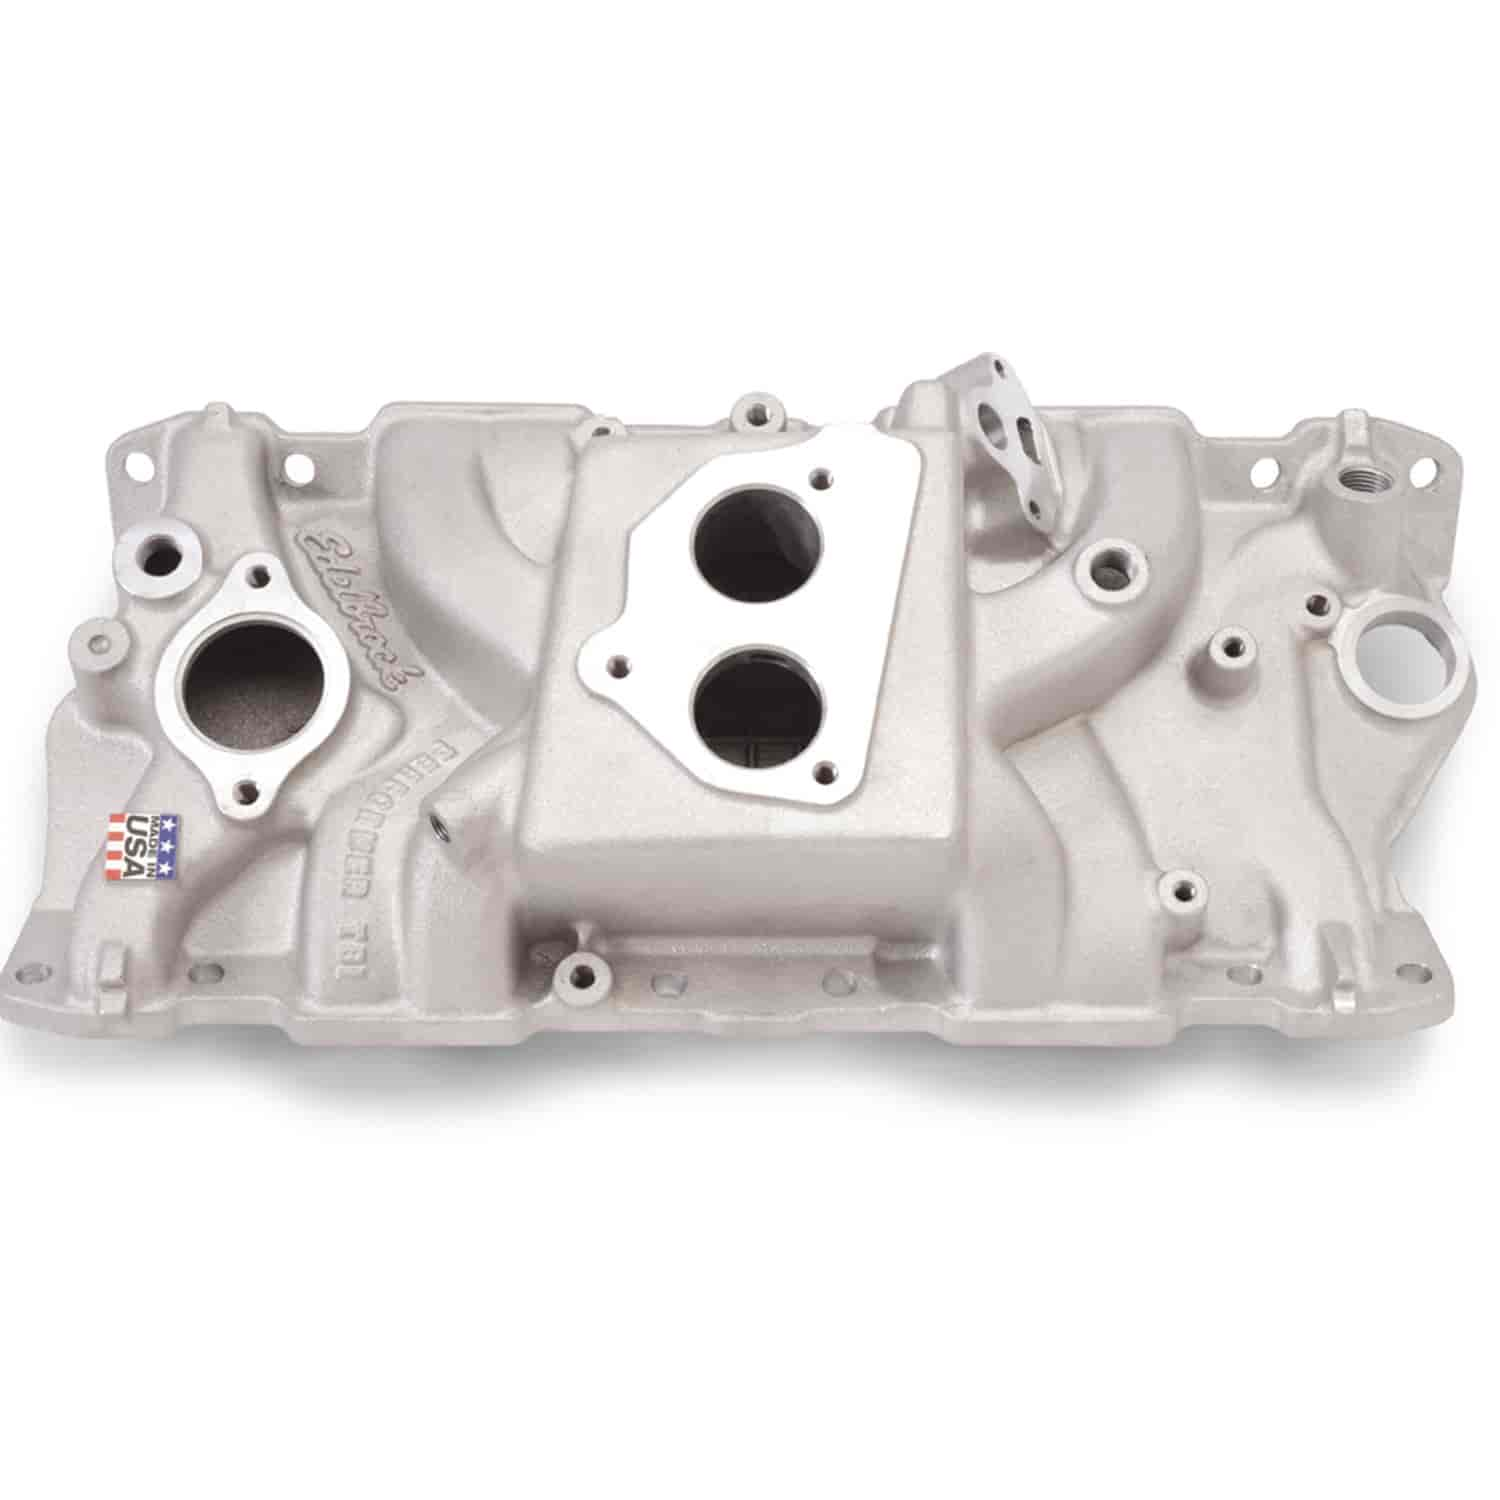 Edelbrock 3704 - Edelbrock Performer Manifolds and Kits for Chevrolet TBI